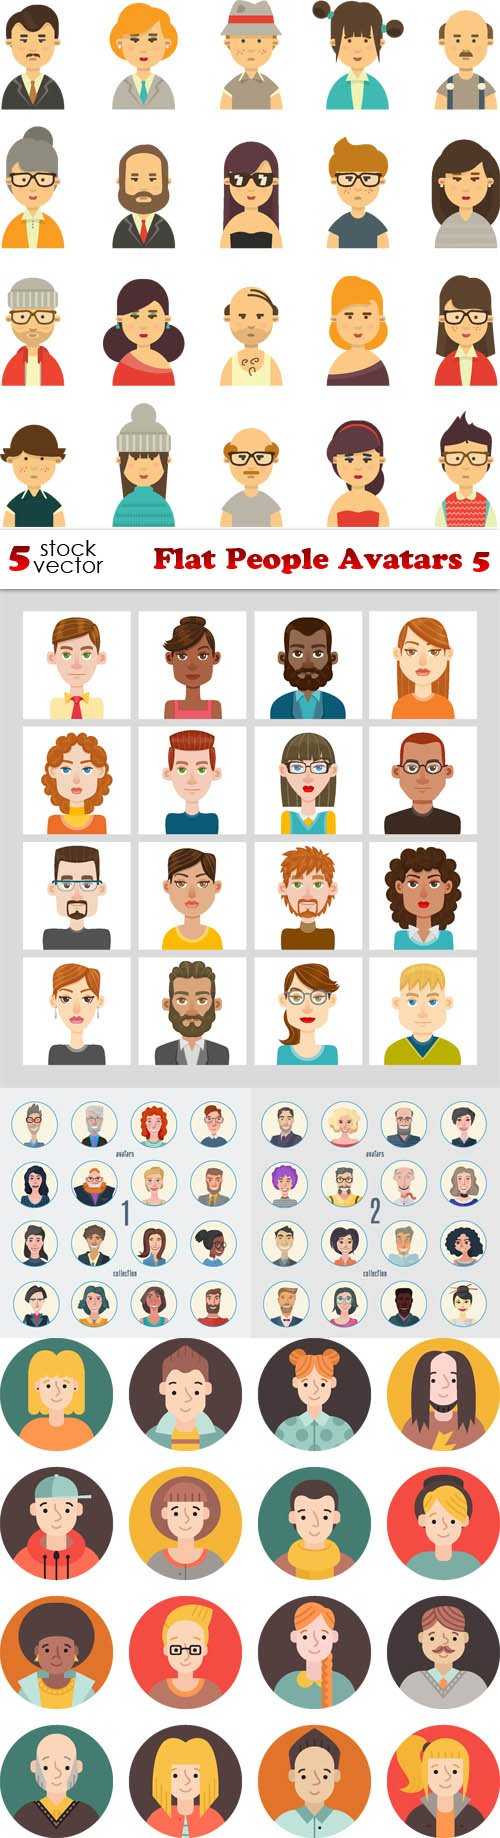 Vectors - Flat People Avatars 5